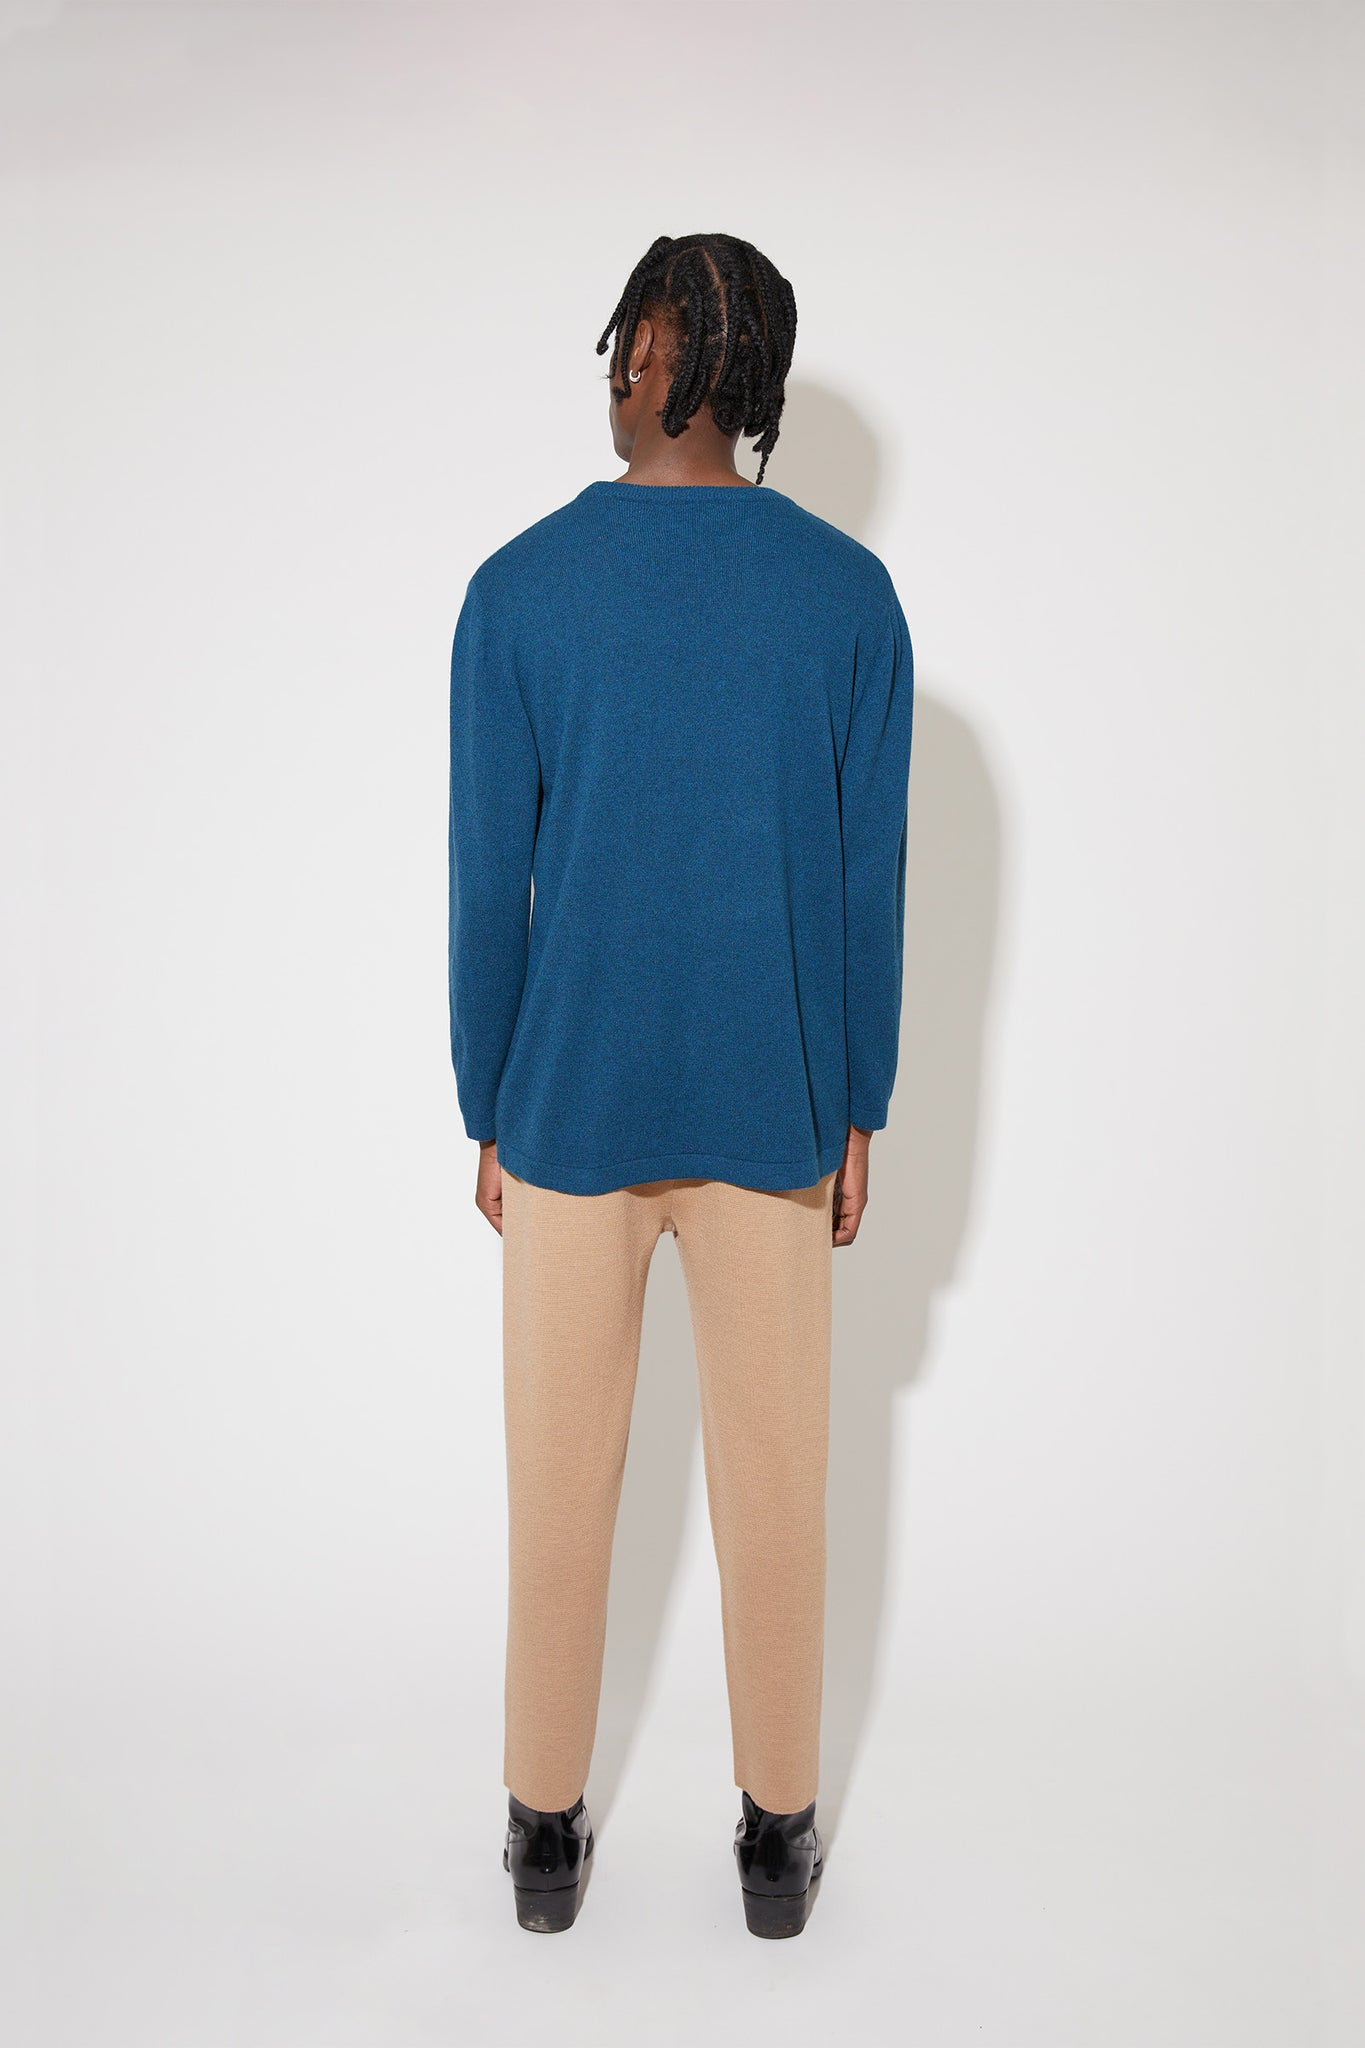 Franz cashmere sweater in blue